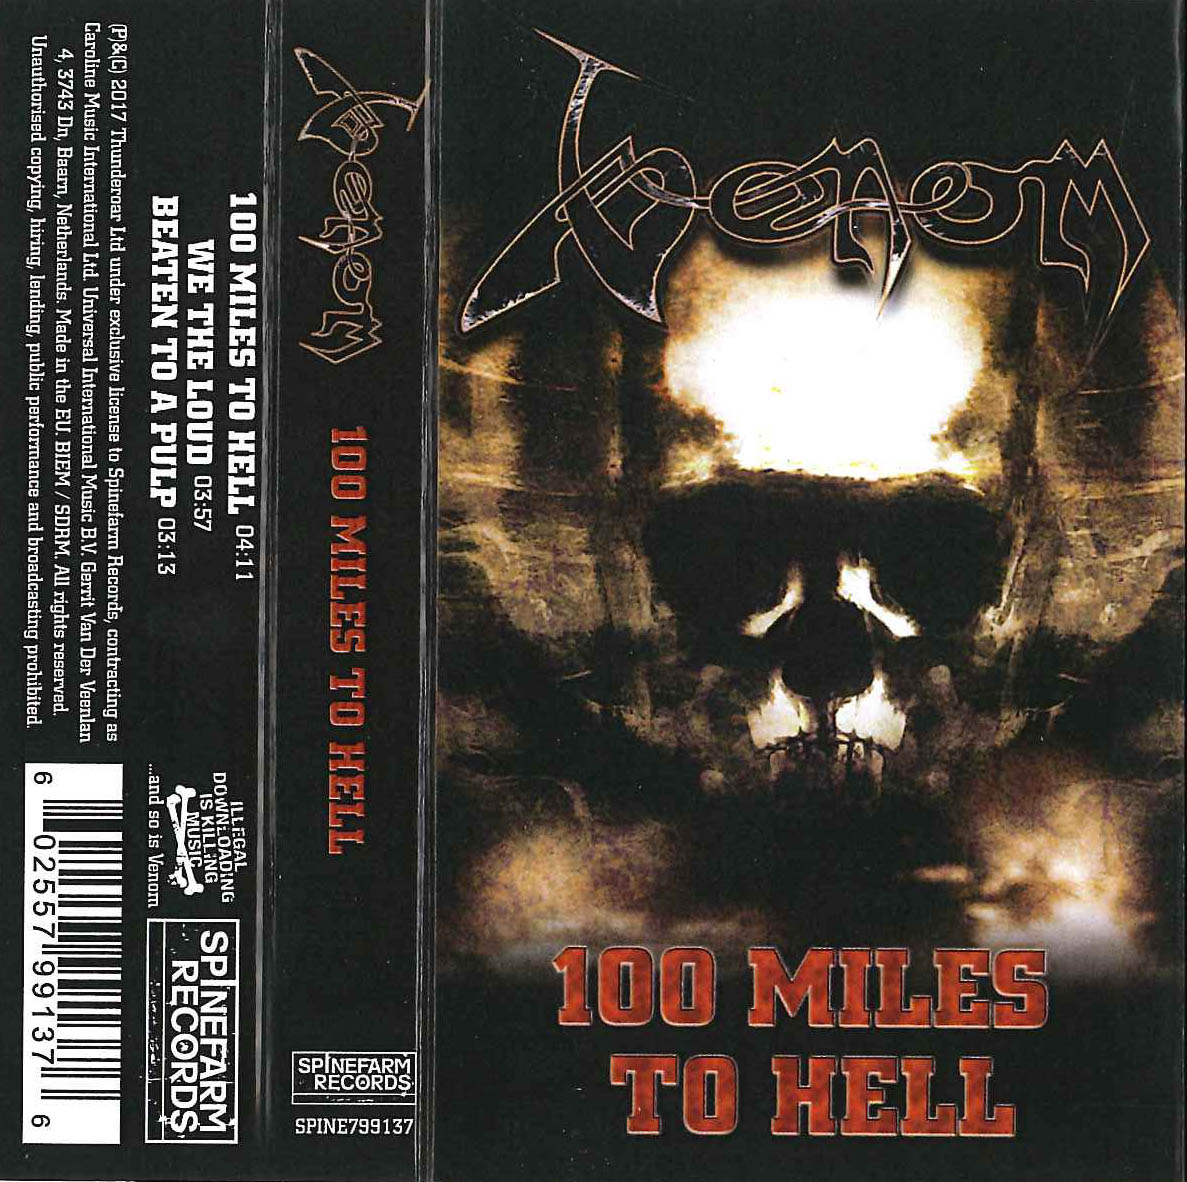 Venom Tapes Collection 100 miles to hell